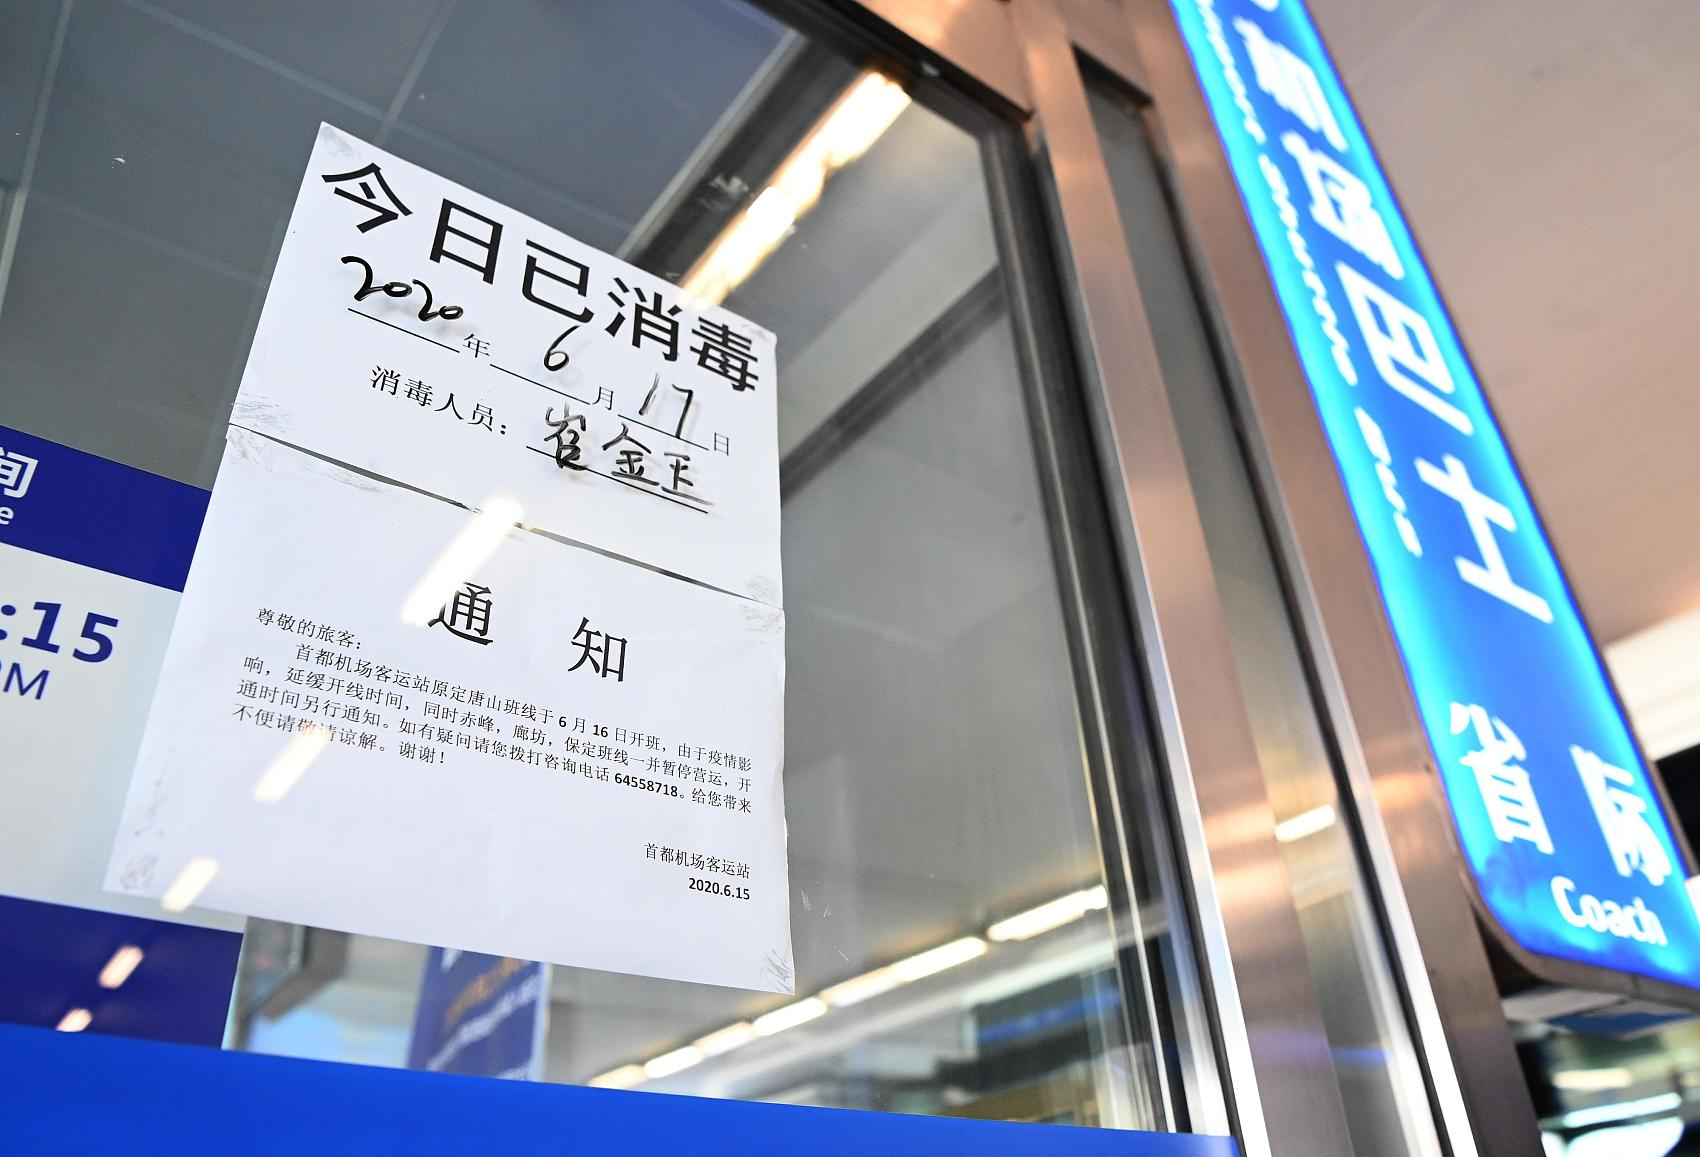 Beijing tightens control of personnel flow to curb COVID-19 infections